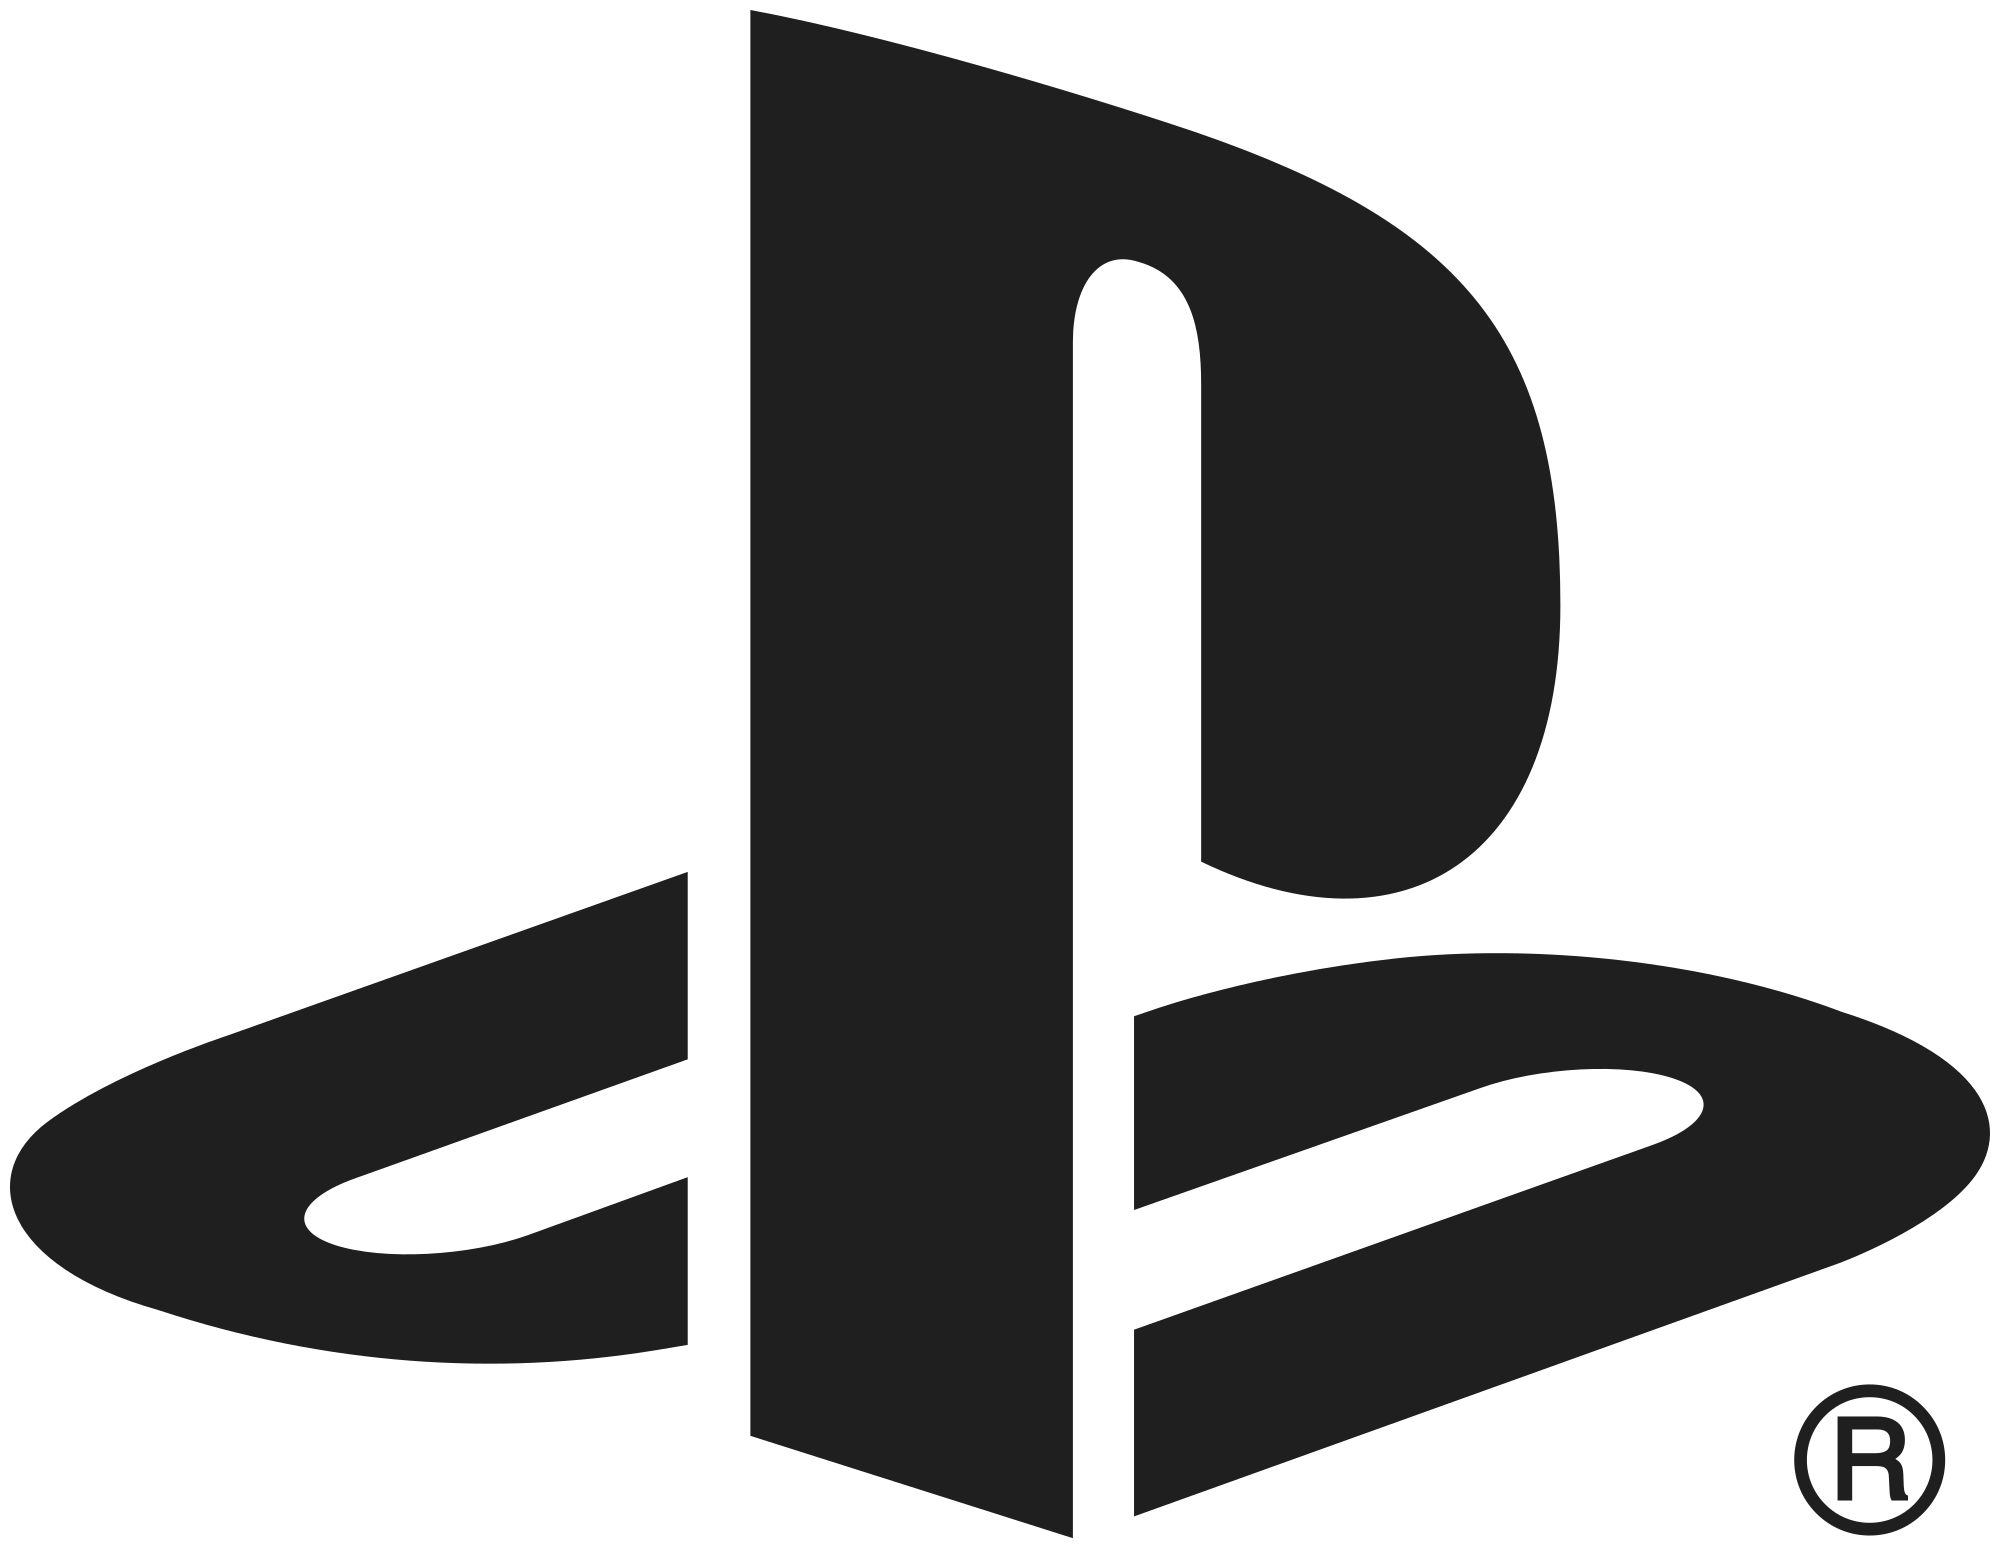 Open PlusPng.com  - Playstation PNG